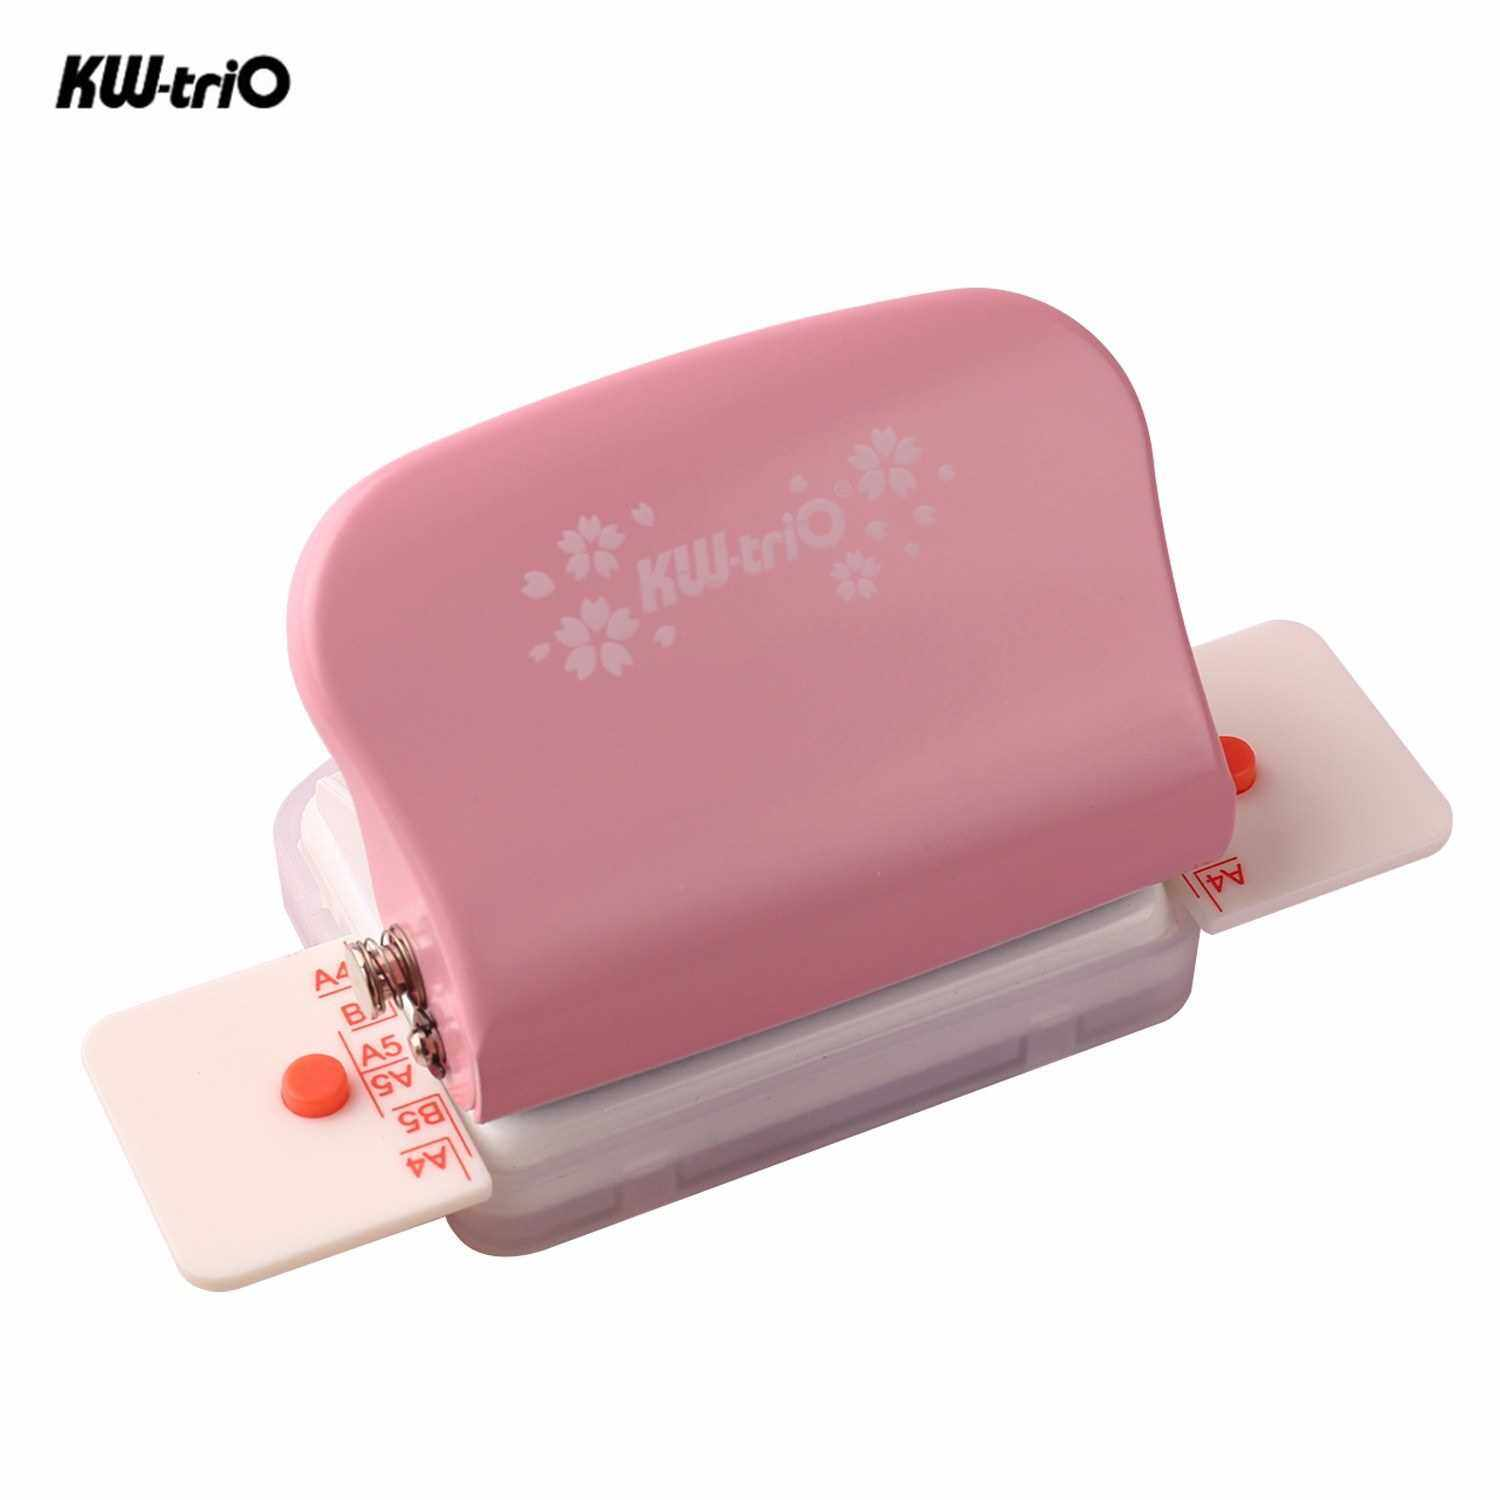 KW-trio 6-Hole Paper Punch Handheld Metal Hole Puncher 5 Sheet Capacity 6mm for A4 A5 B5 Notebook Scrapbook Diary Planner (Pink)